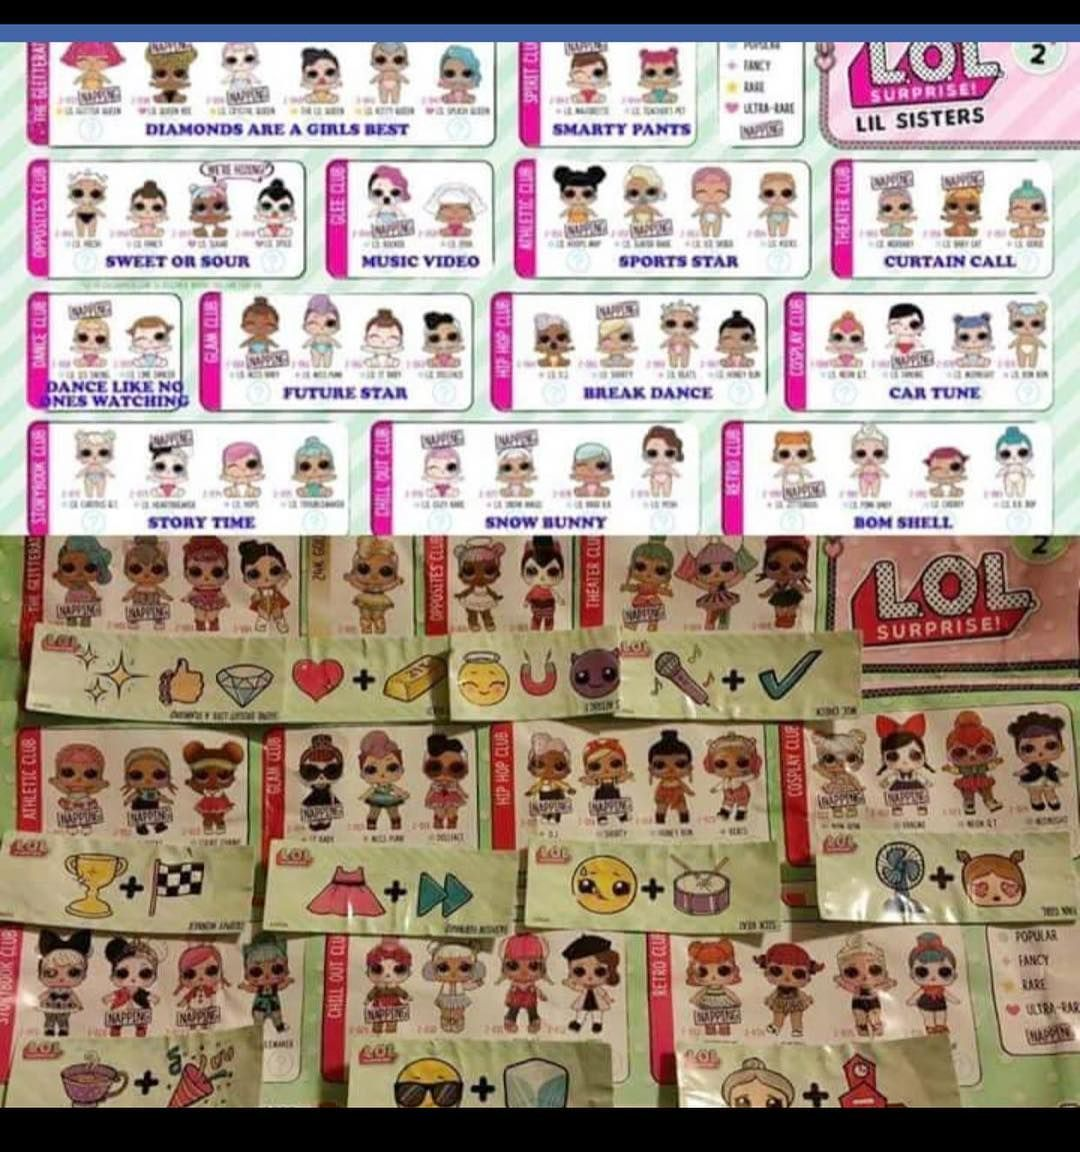 Lol Surprise Series 2 Bigs And Littles With Their Matching Clues Not My Picture Lolsurprise Lolsurprisedolls Series2 Clues T Lol Dolls Lol My Pictures